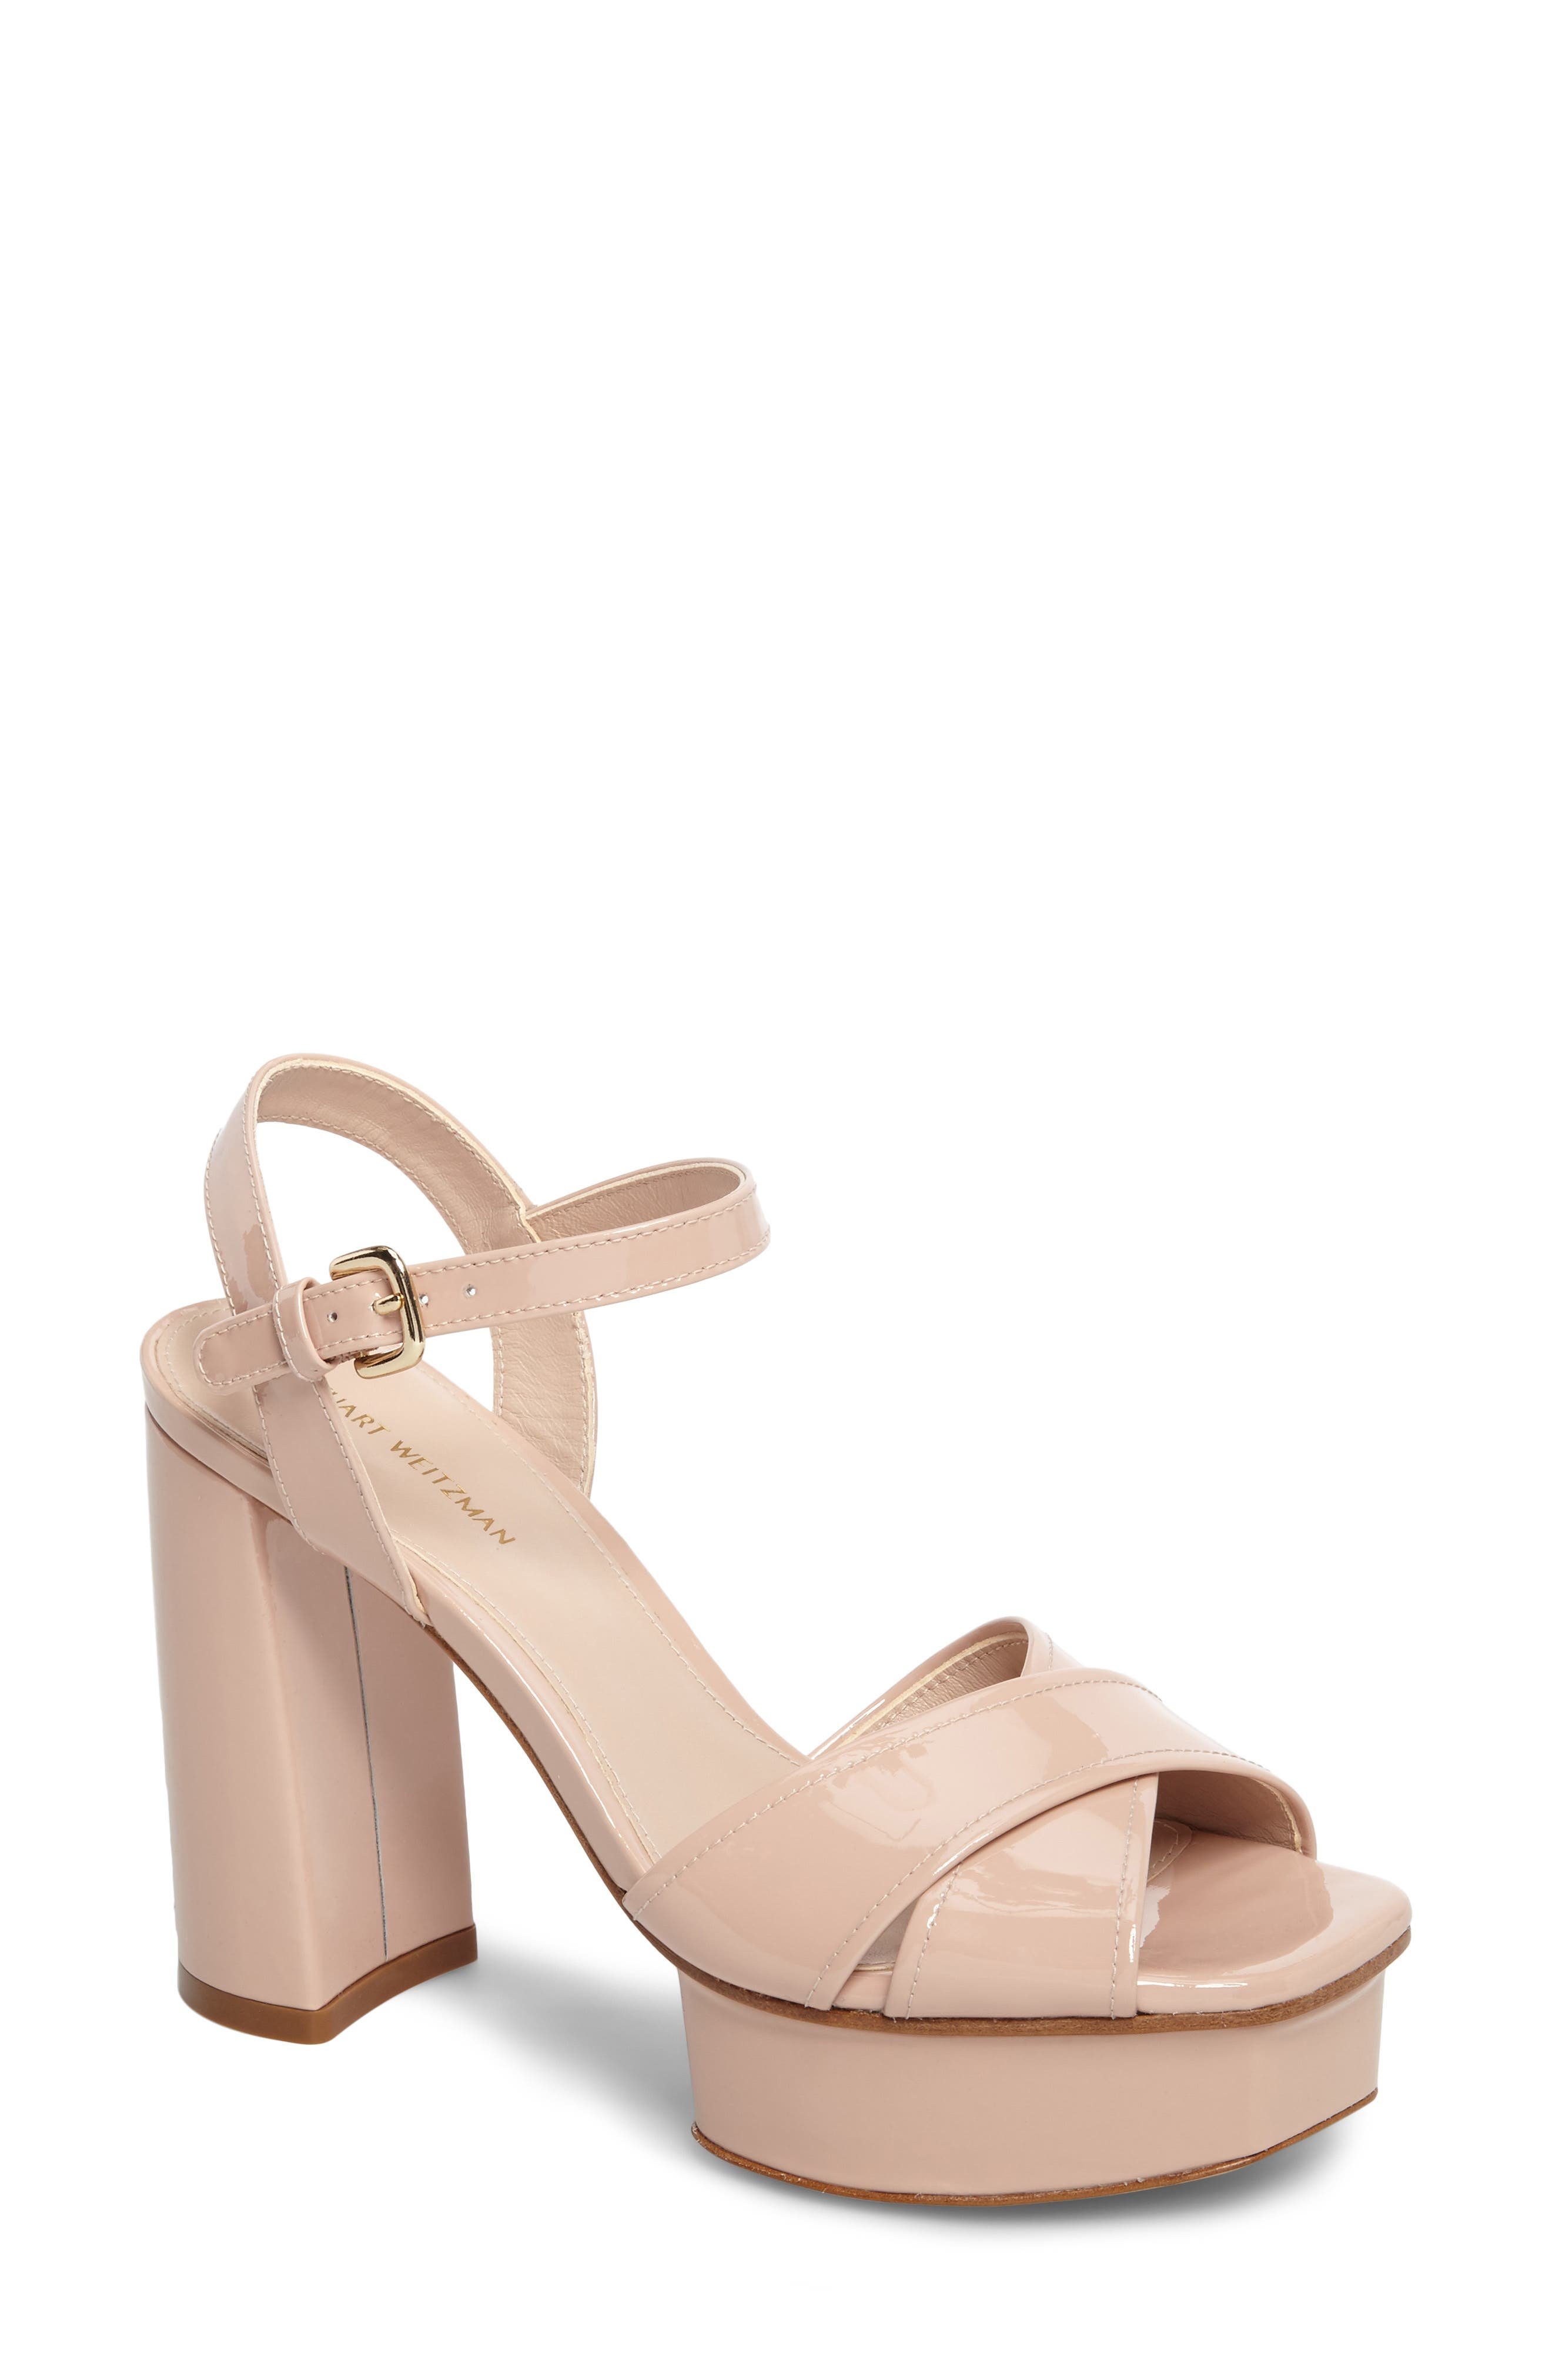 Exposed Platform Sandal,                             Main thumbnail 3, color,